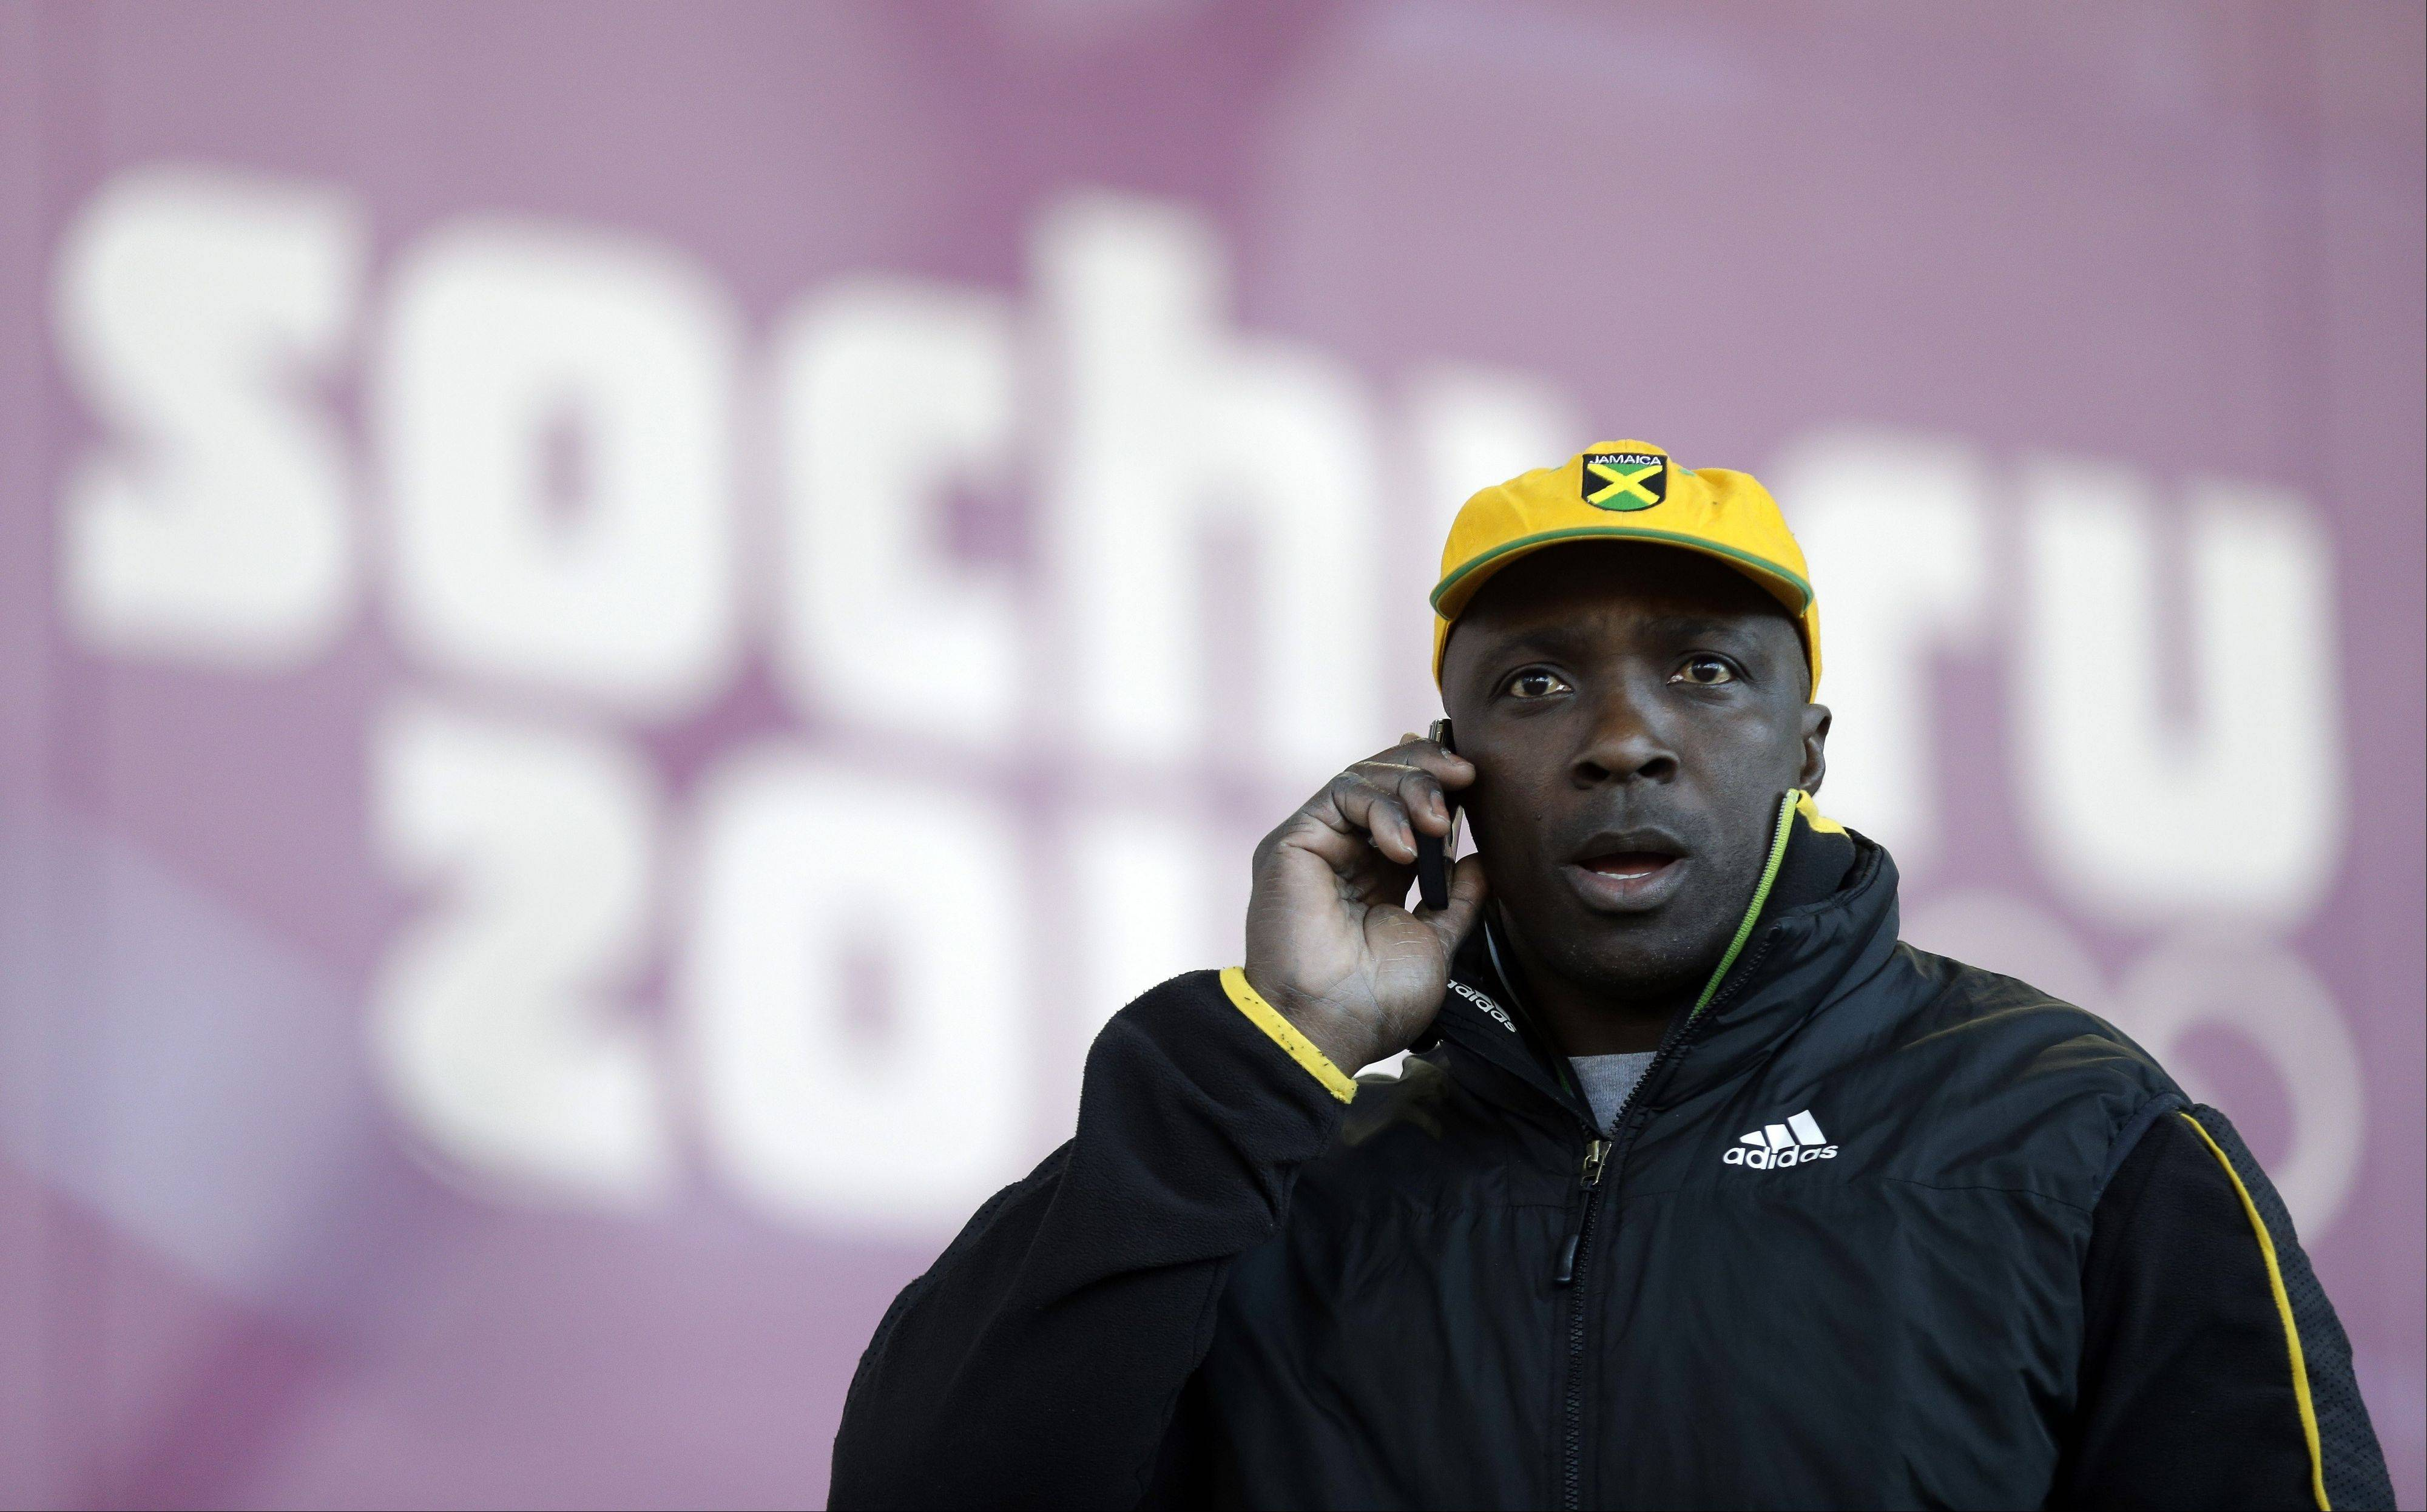 Associated Press Winston Watts, the driver for JAM-1 of Jamaica, and his bobsled teammates were unable to practice because the Jamaican team equipment and luggage did not arrive in Sochi.